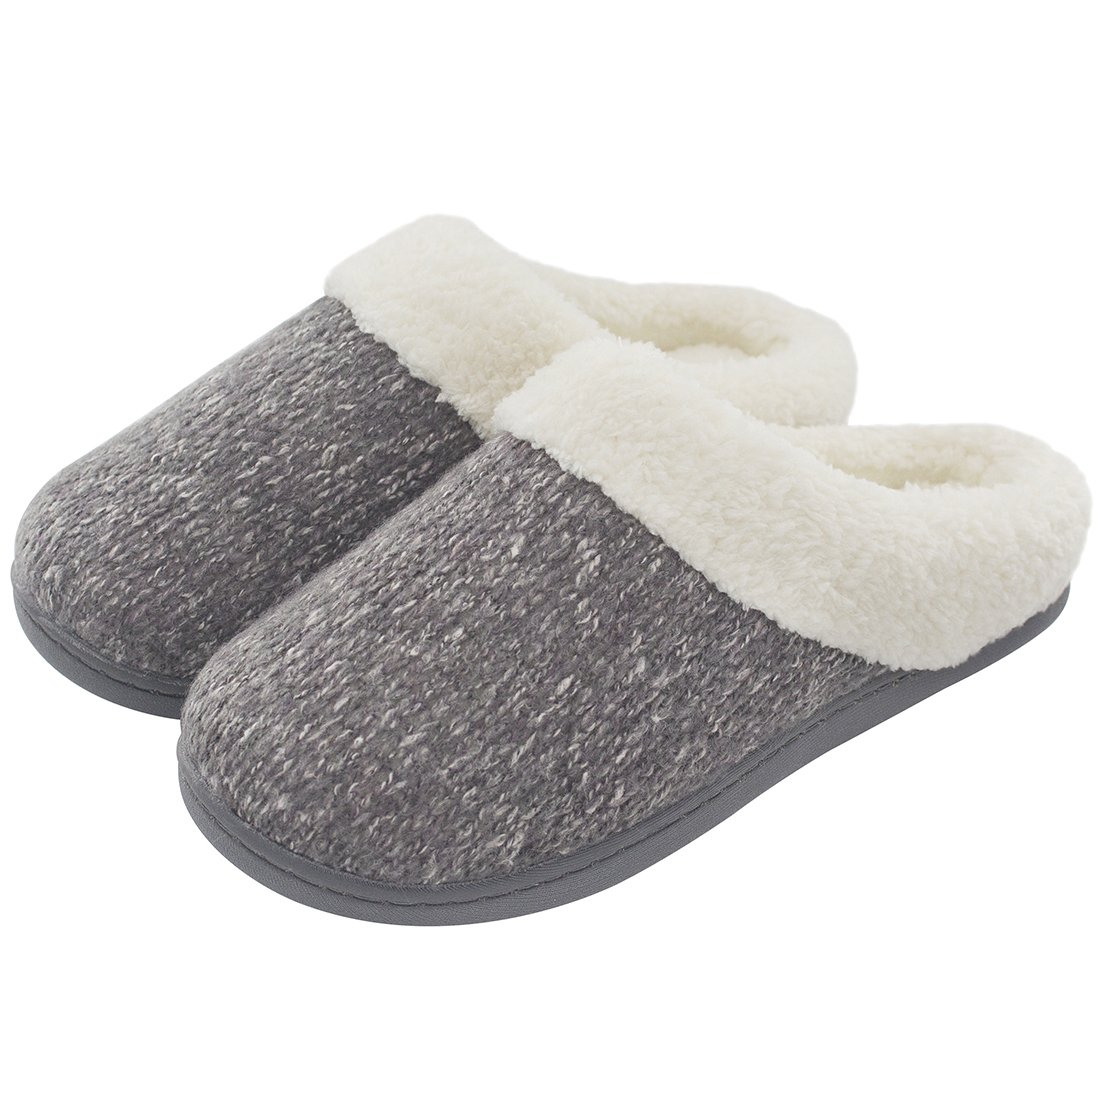 Women's Cozy Woolen Yarn Knitted Slippers Memory Foam Plush Lining Slip-on House Shoes w/Anti-Slip Sole, Indoor/Outdoor (Medium / 7-8 B(M) US, Gray)